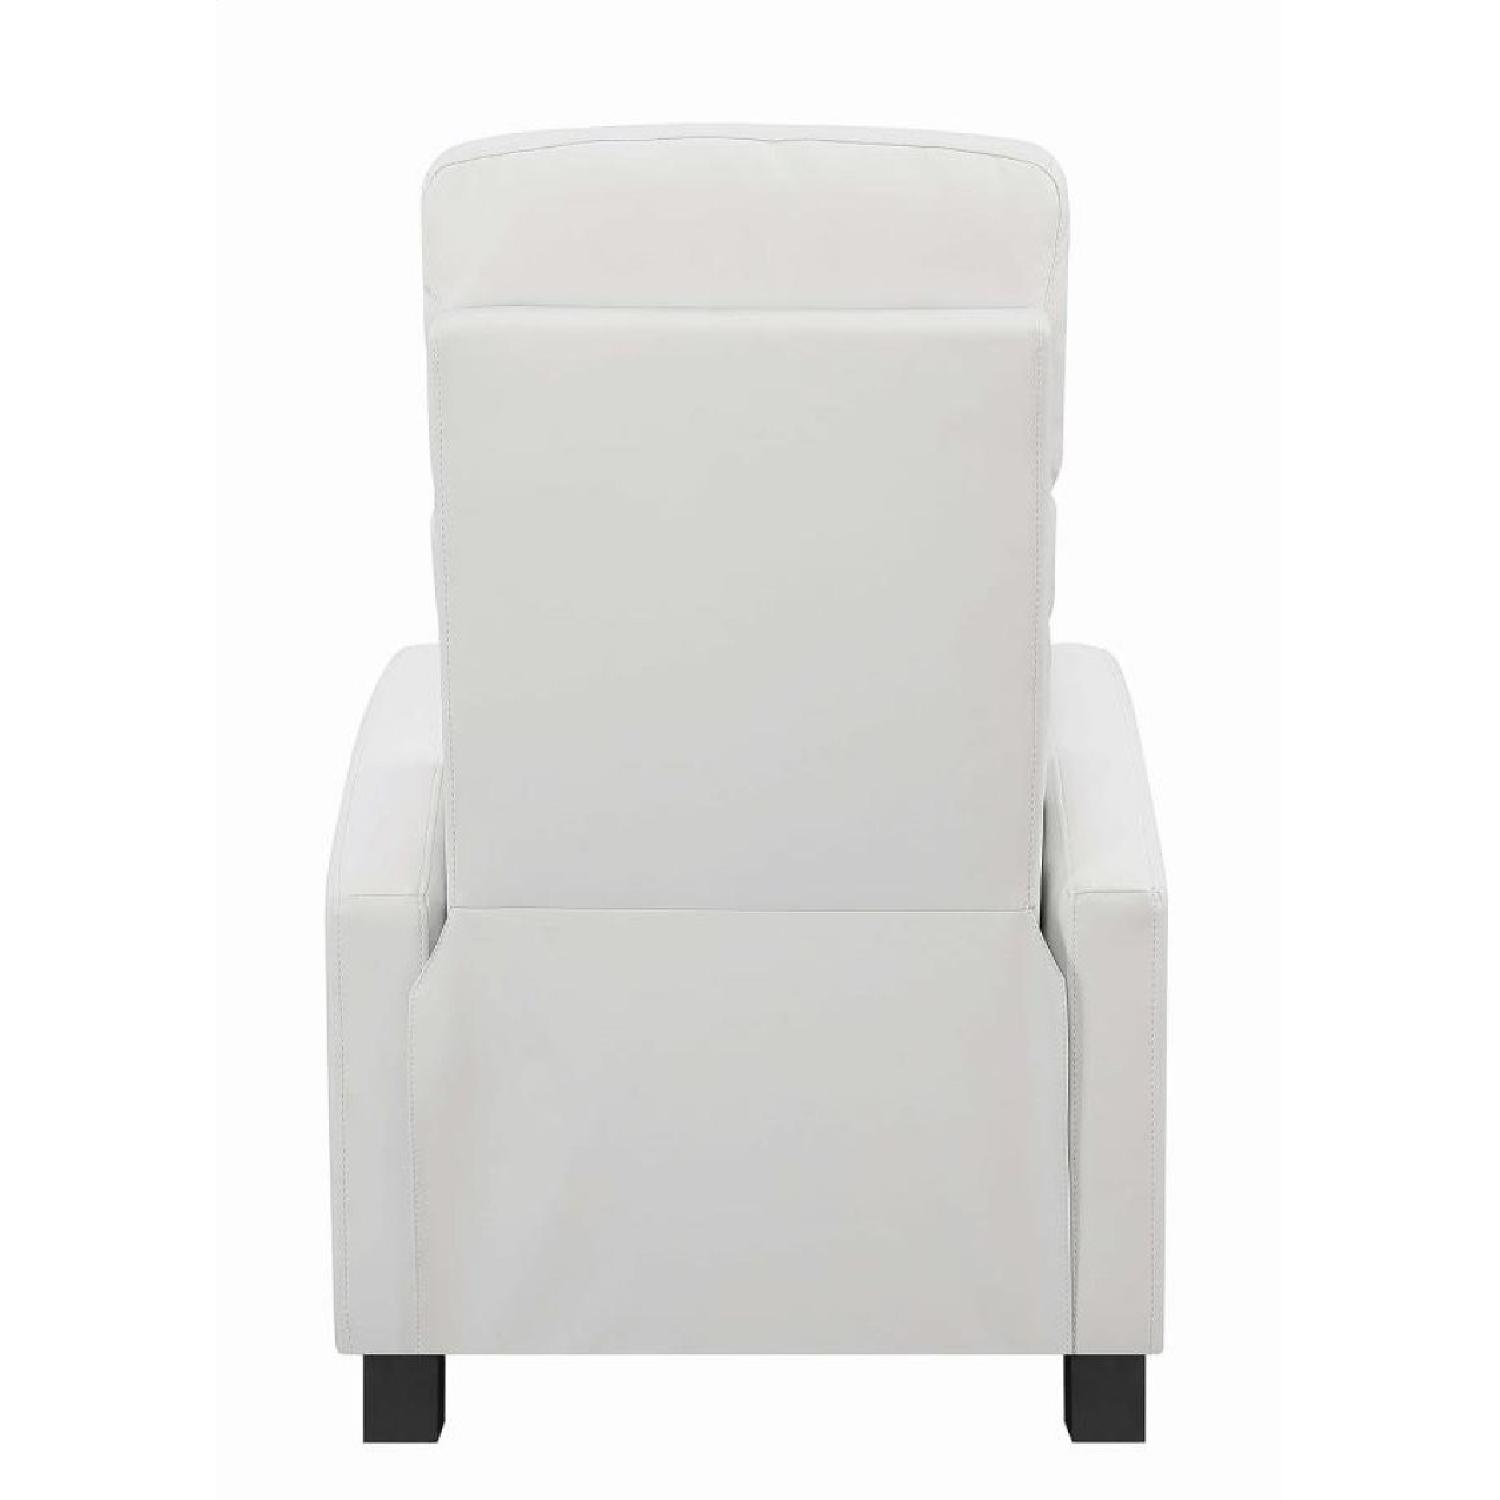 Compact Recliner Chair in White Leatherette-3